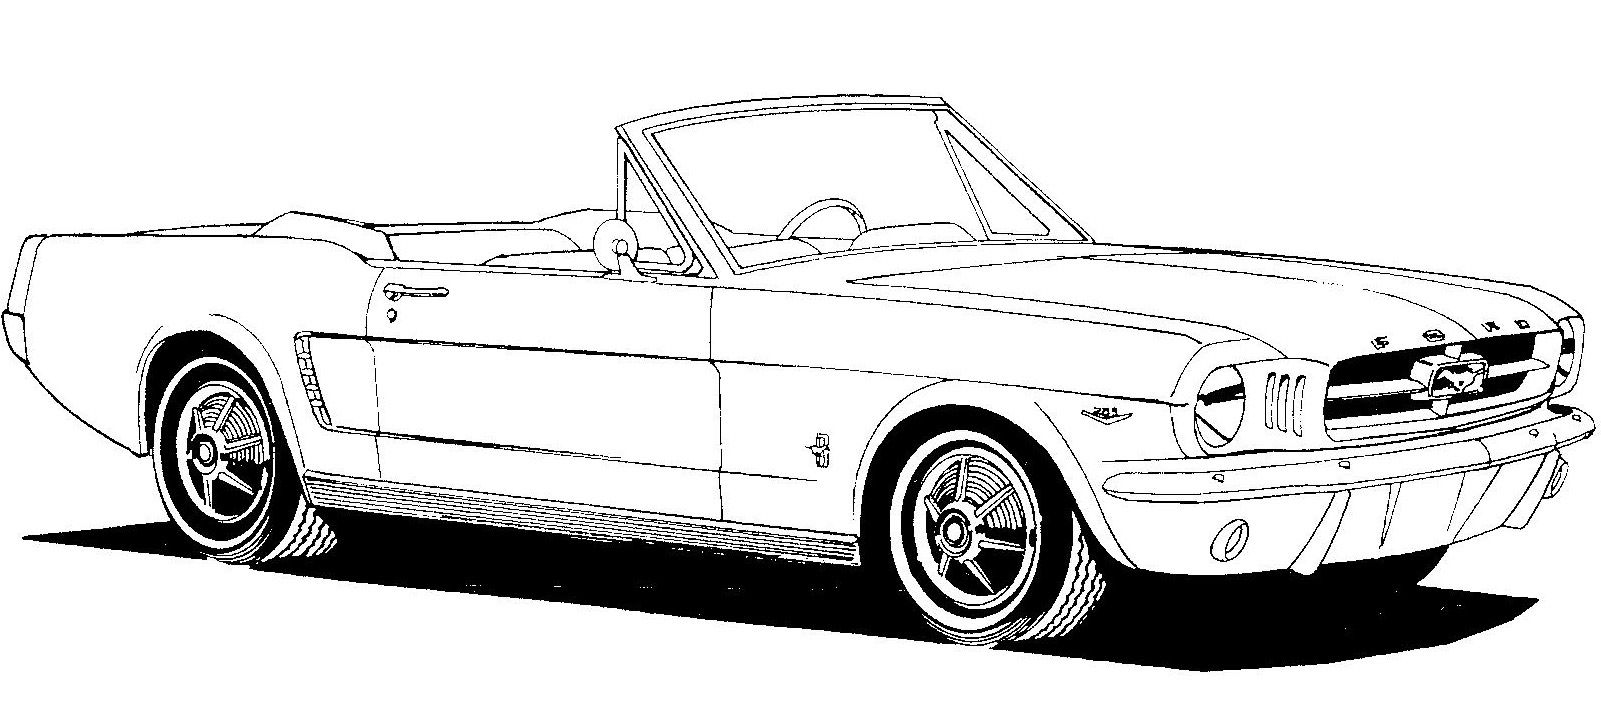 Red Mustang Convertible Clip Art Bing Images HOT ROD